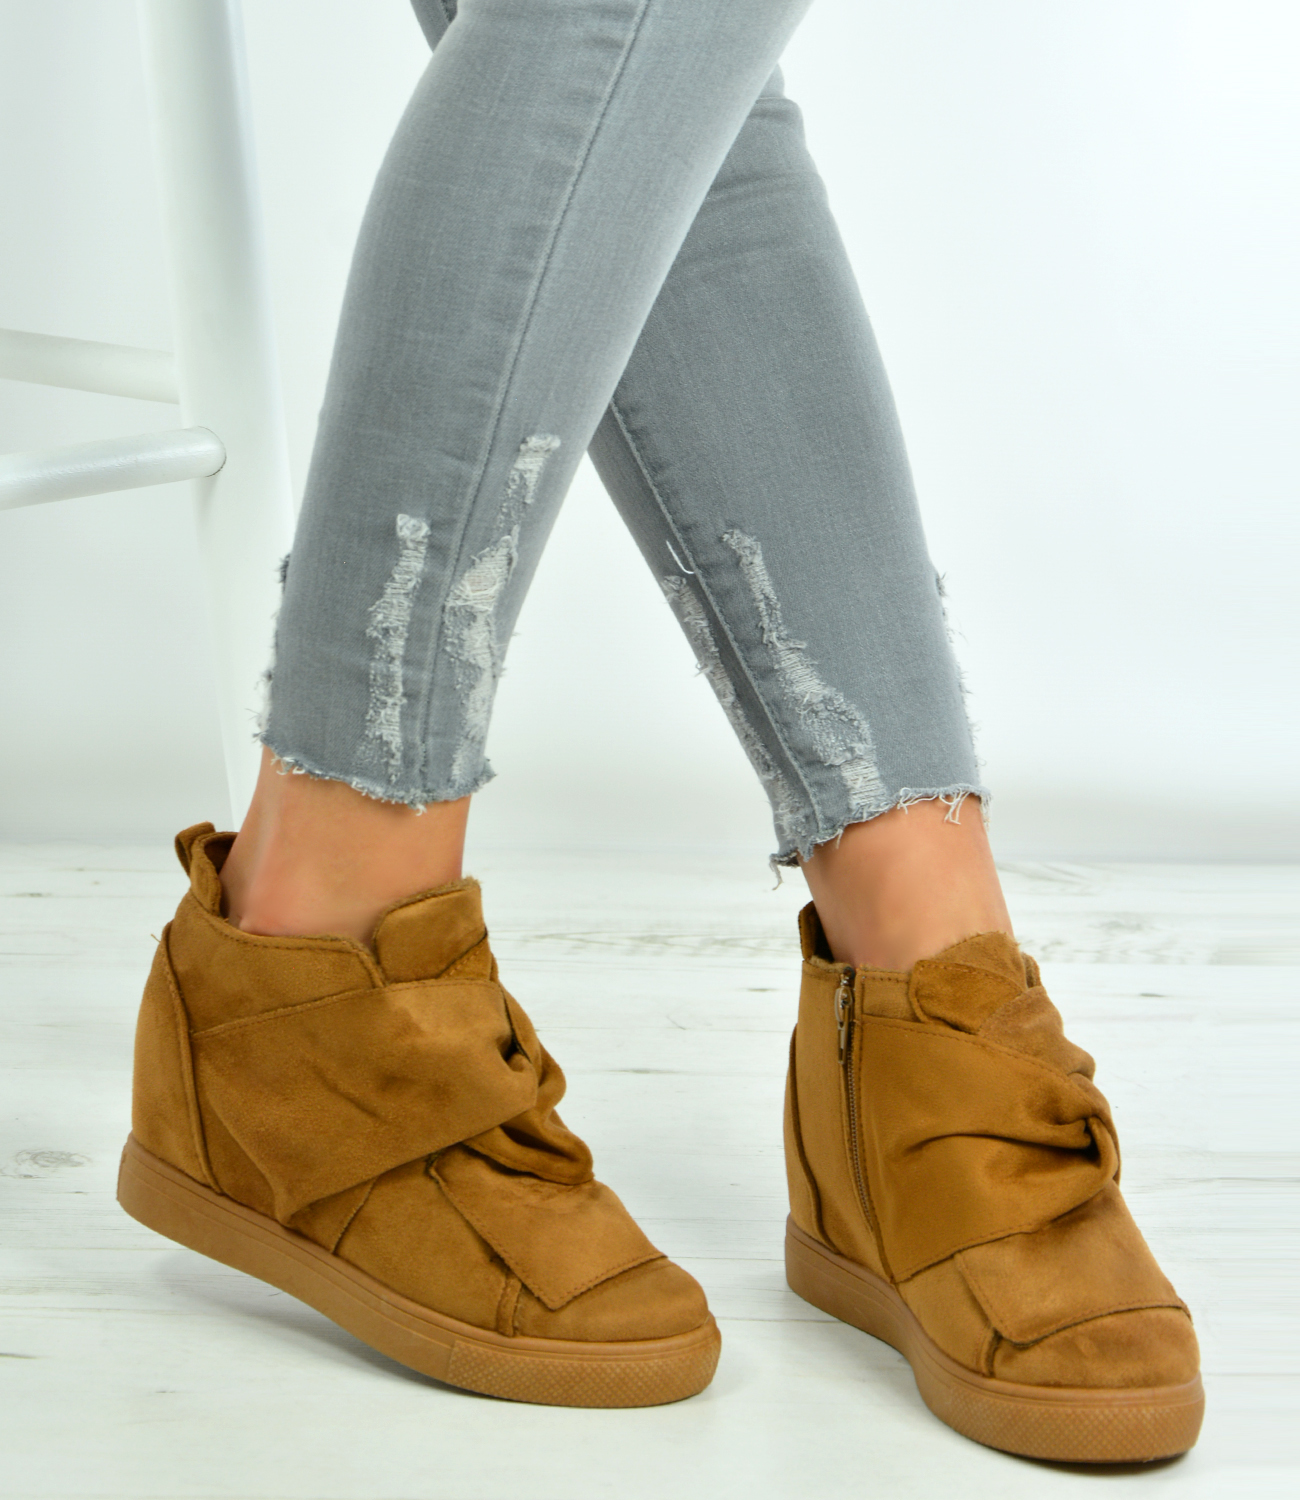 New-Womens-Ladies-Ankle-Wrap-Wedge-Trainers-Suede-Sneakers-Shoes-Size-Uk-3-8